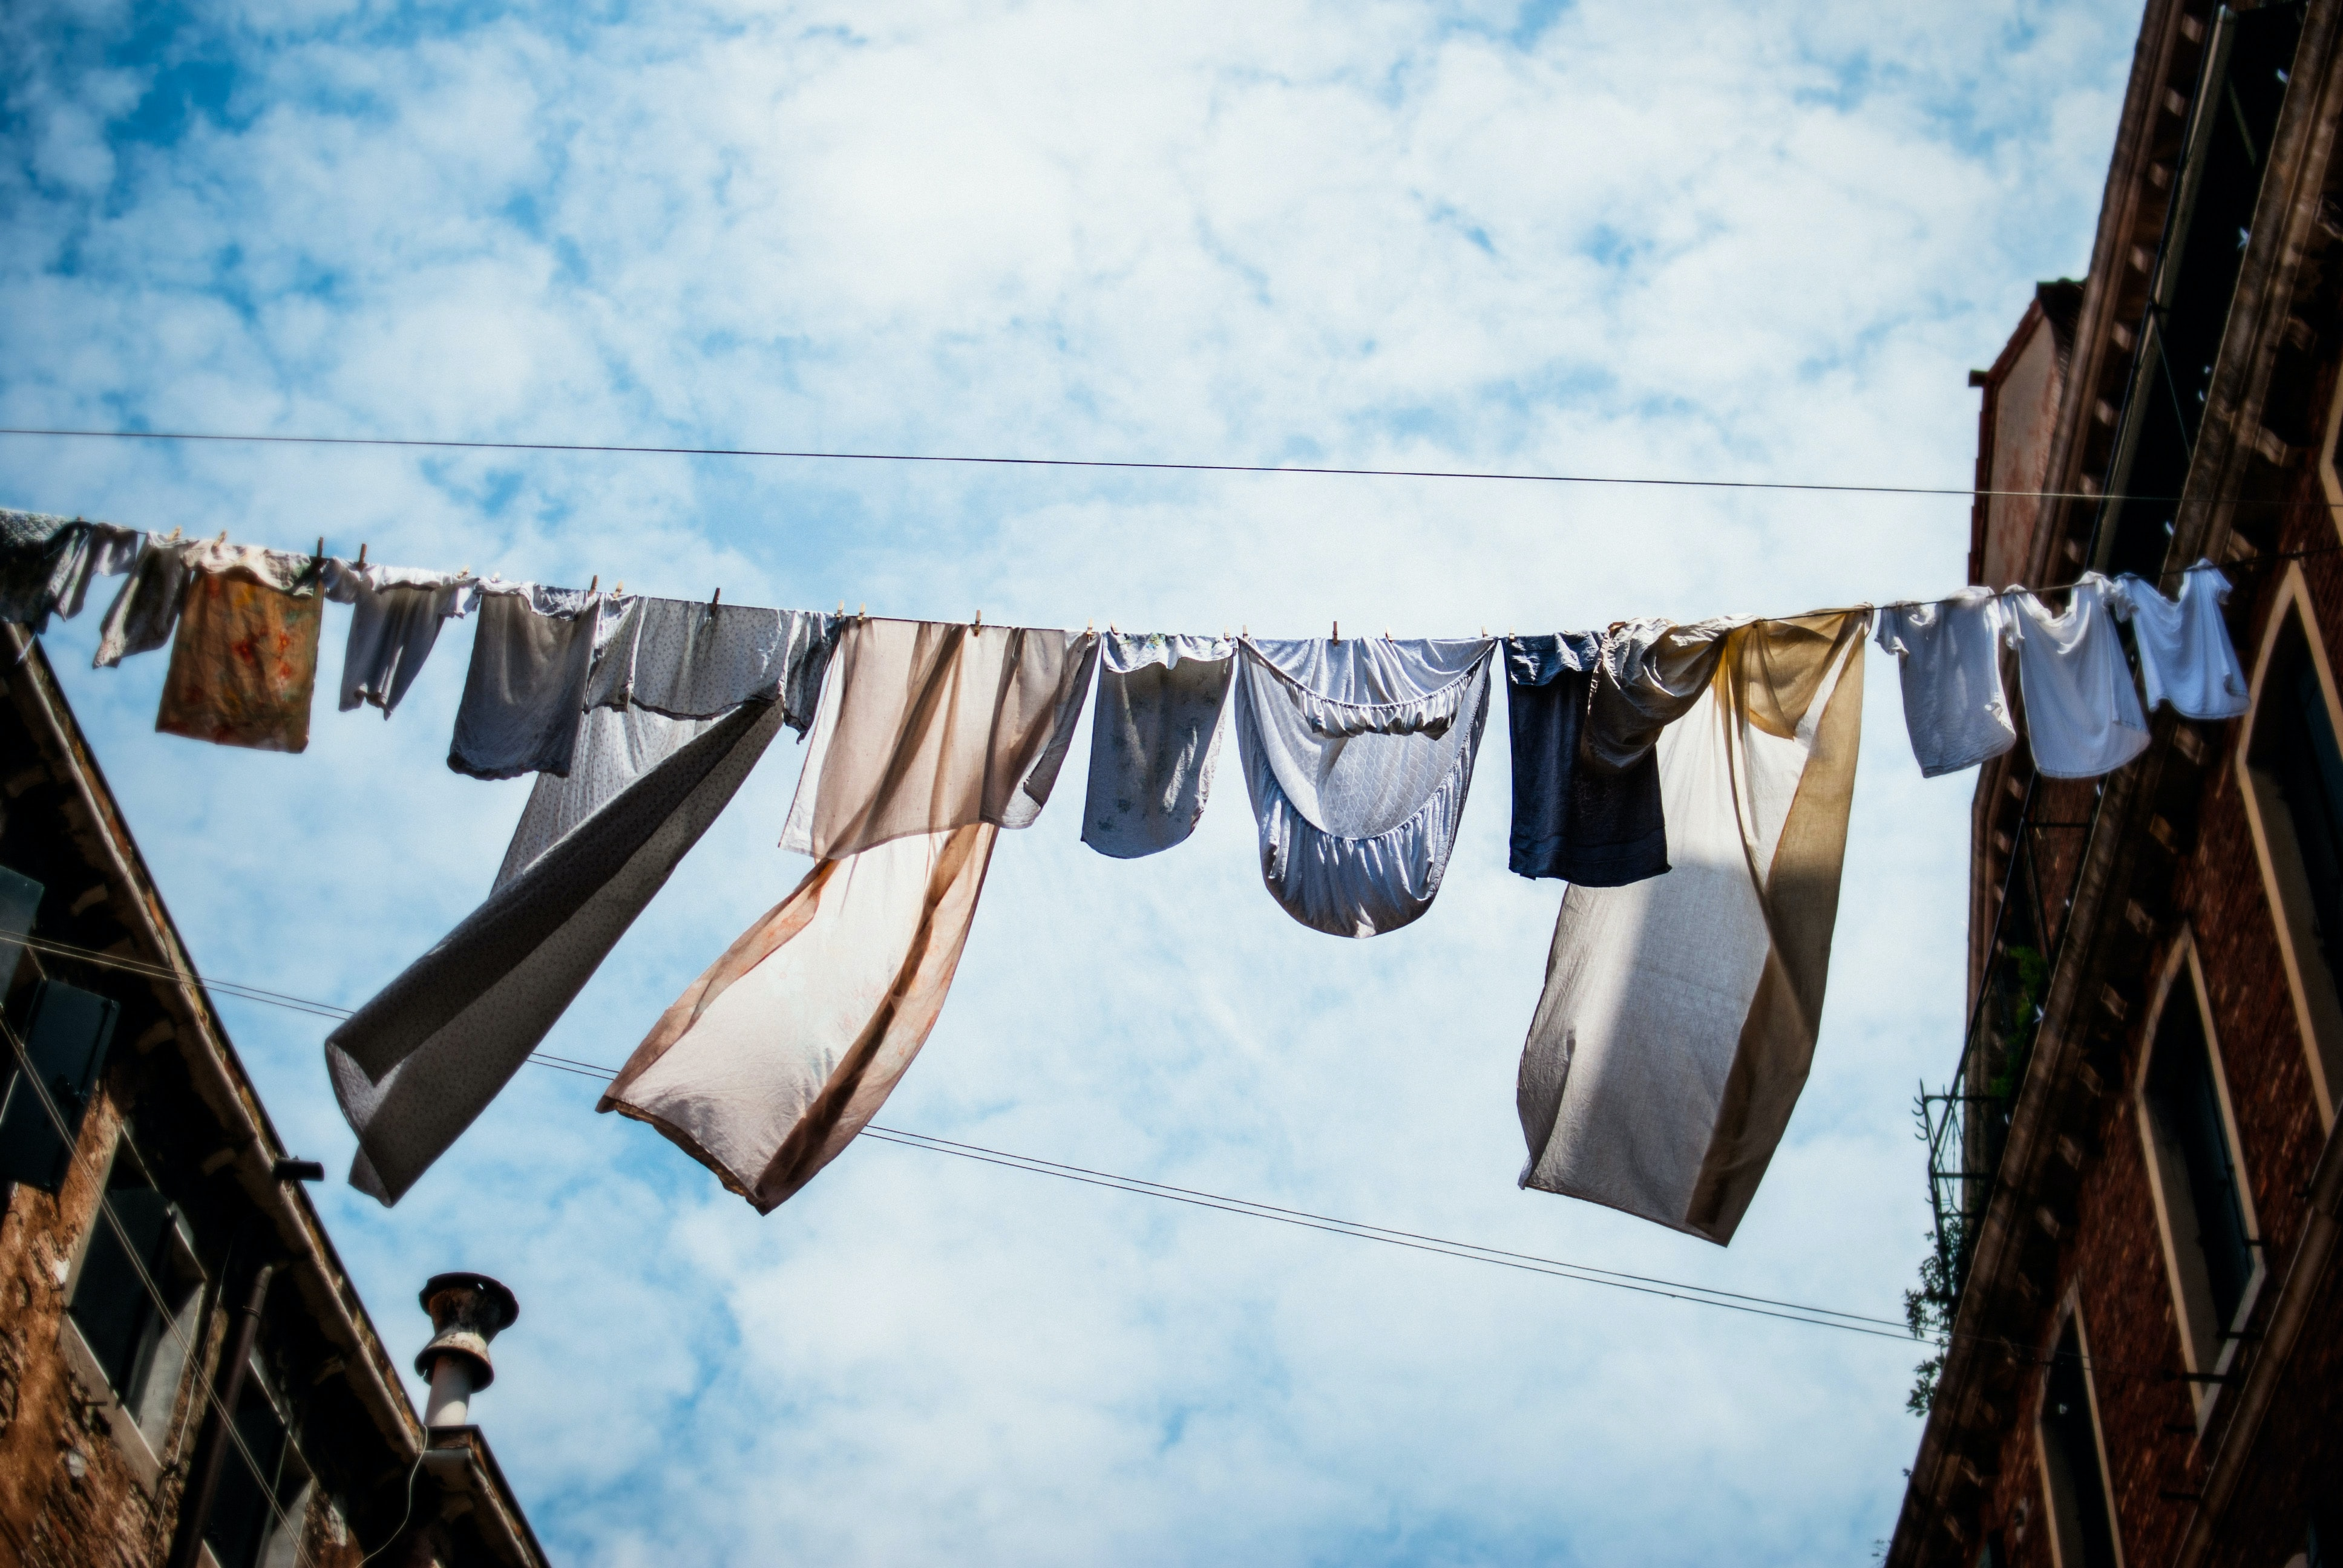 Freshly Done Laundry stories